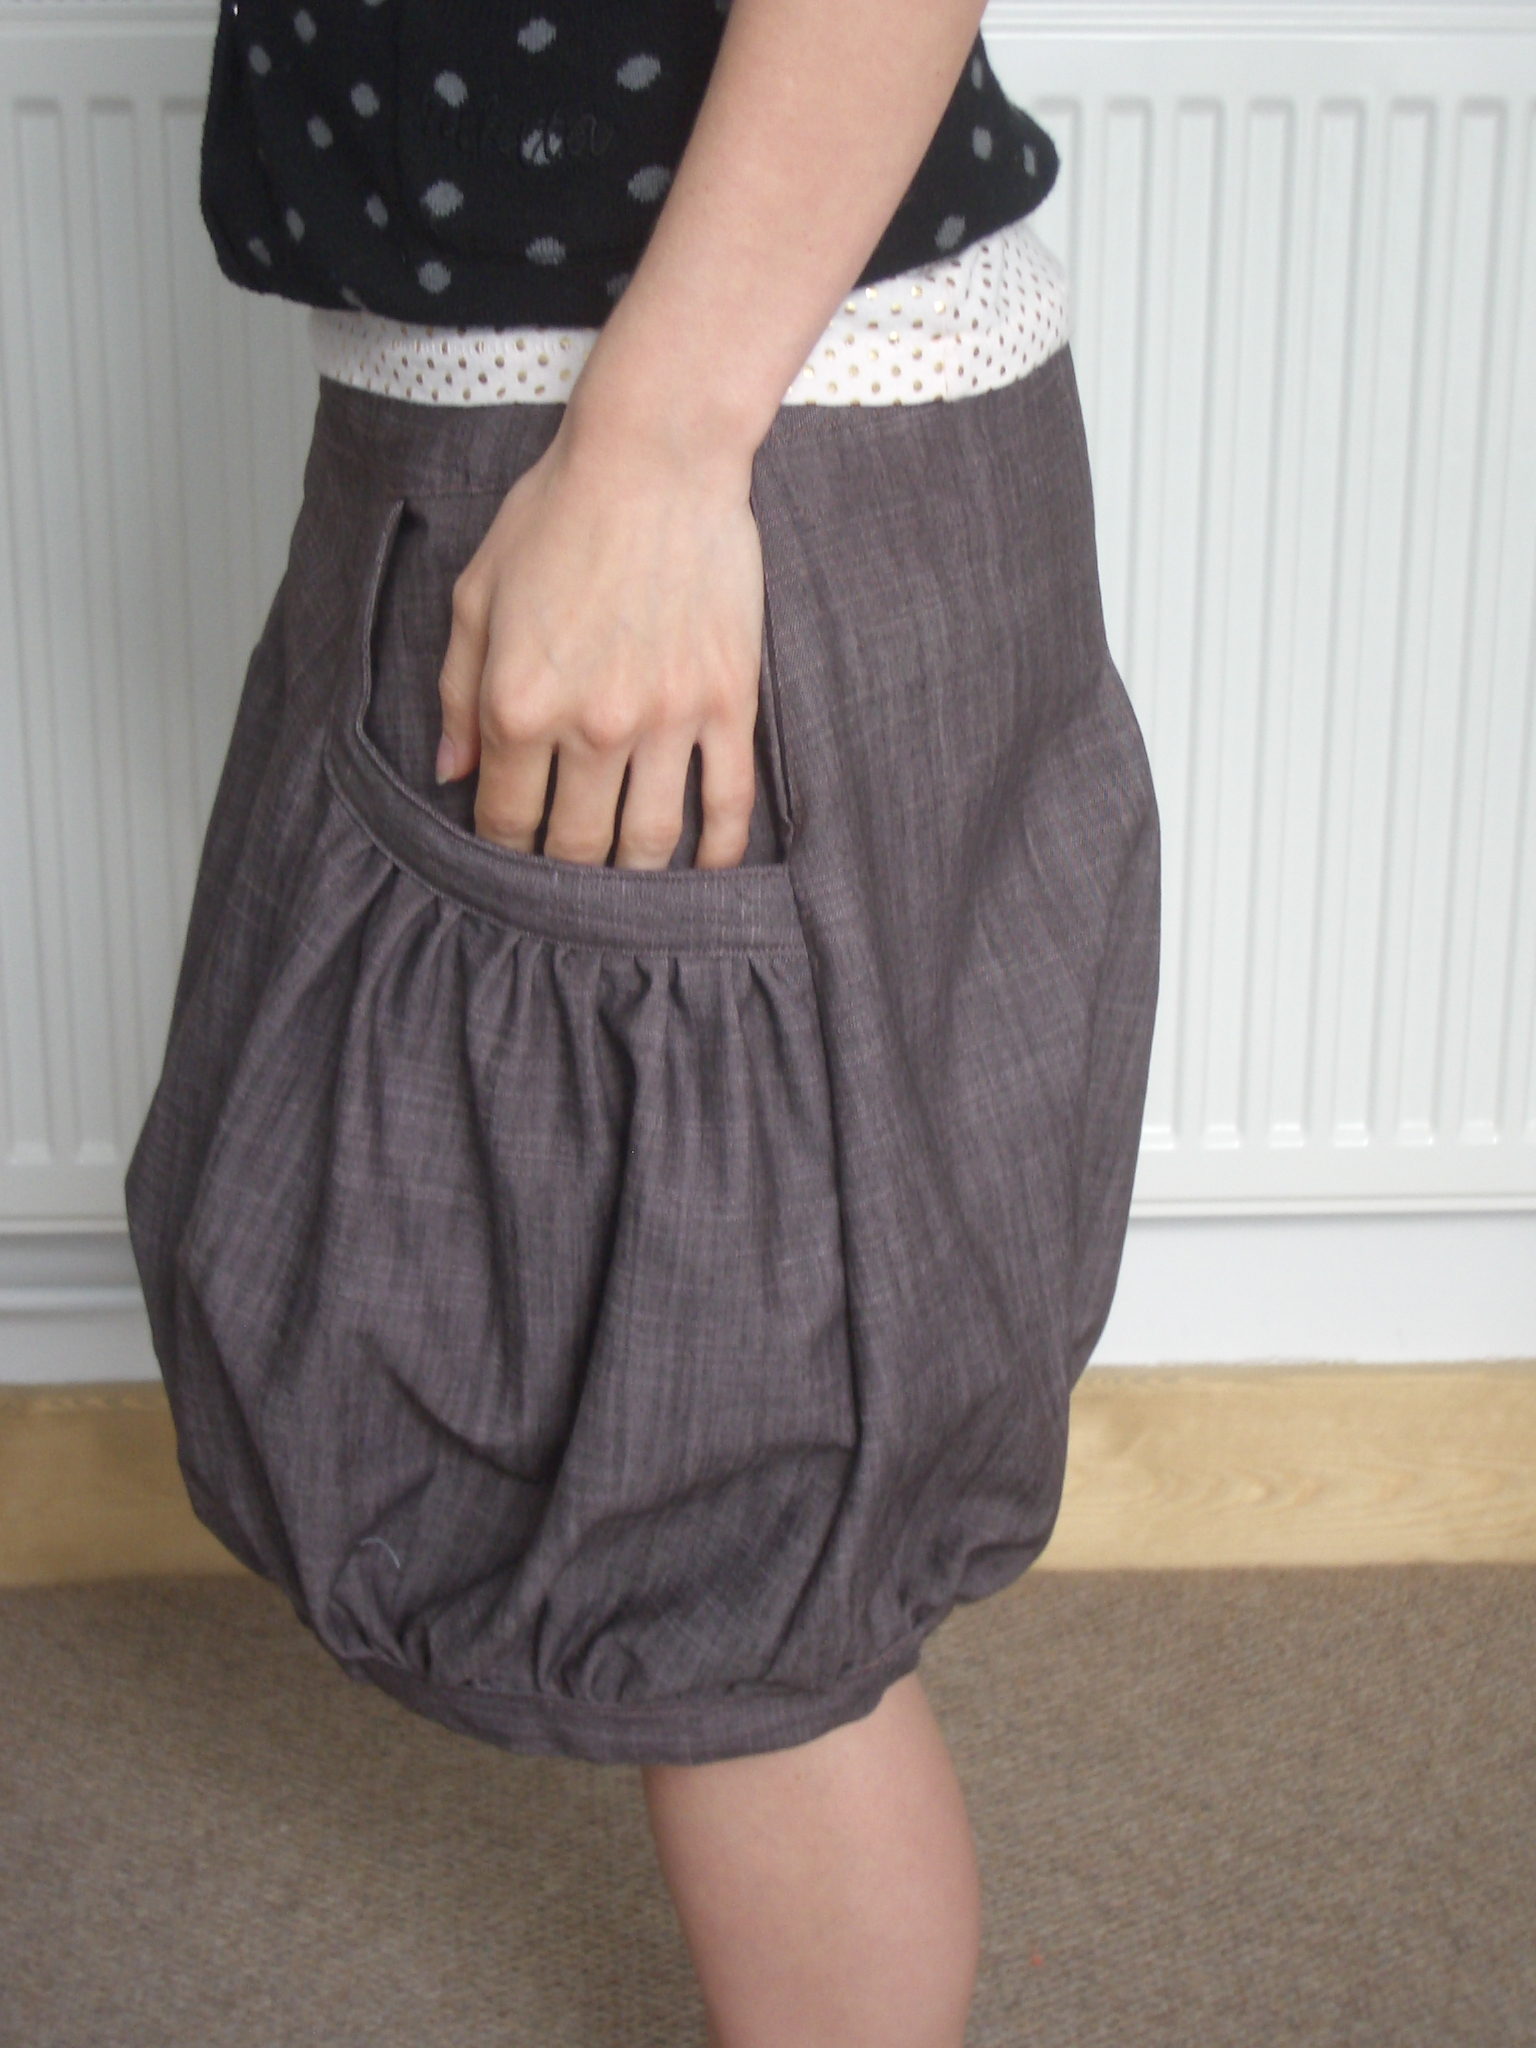 Balloon skirt – Sewing Projects